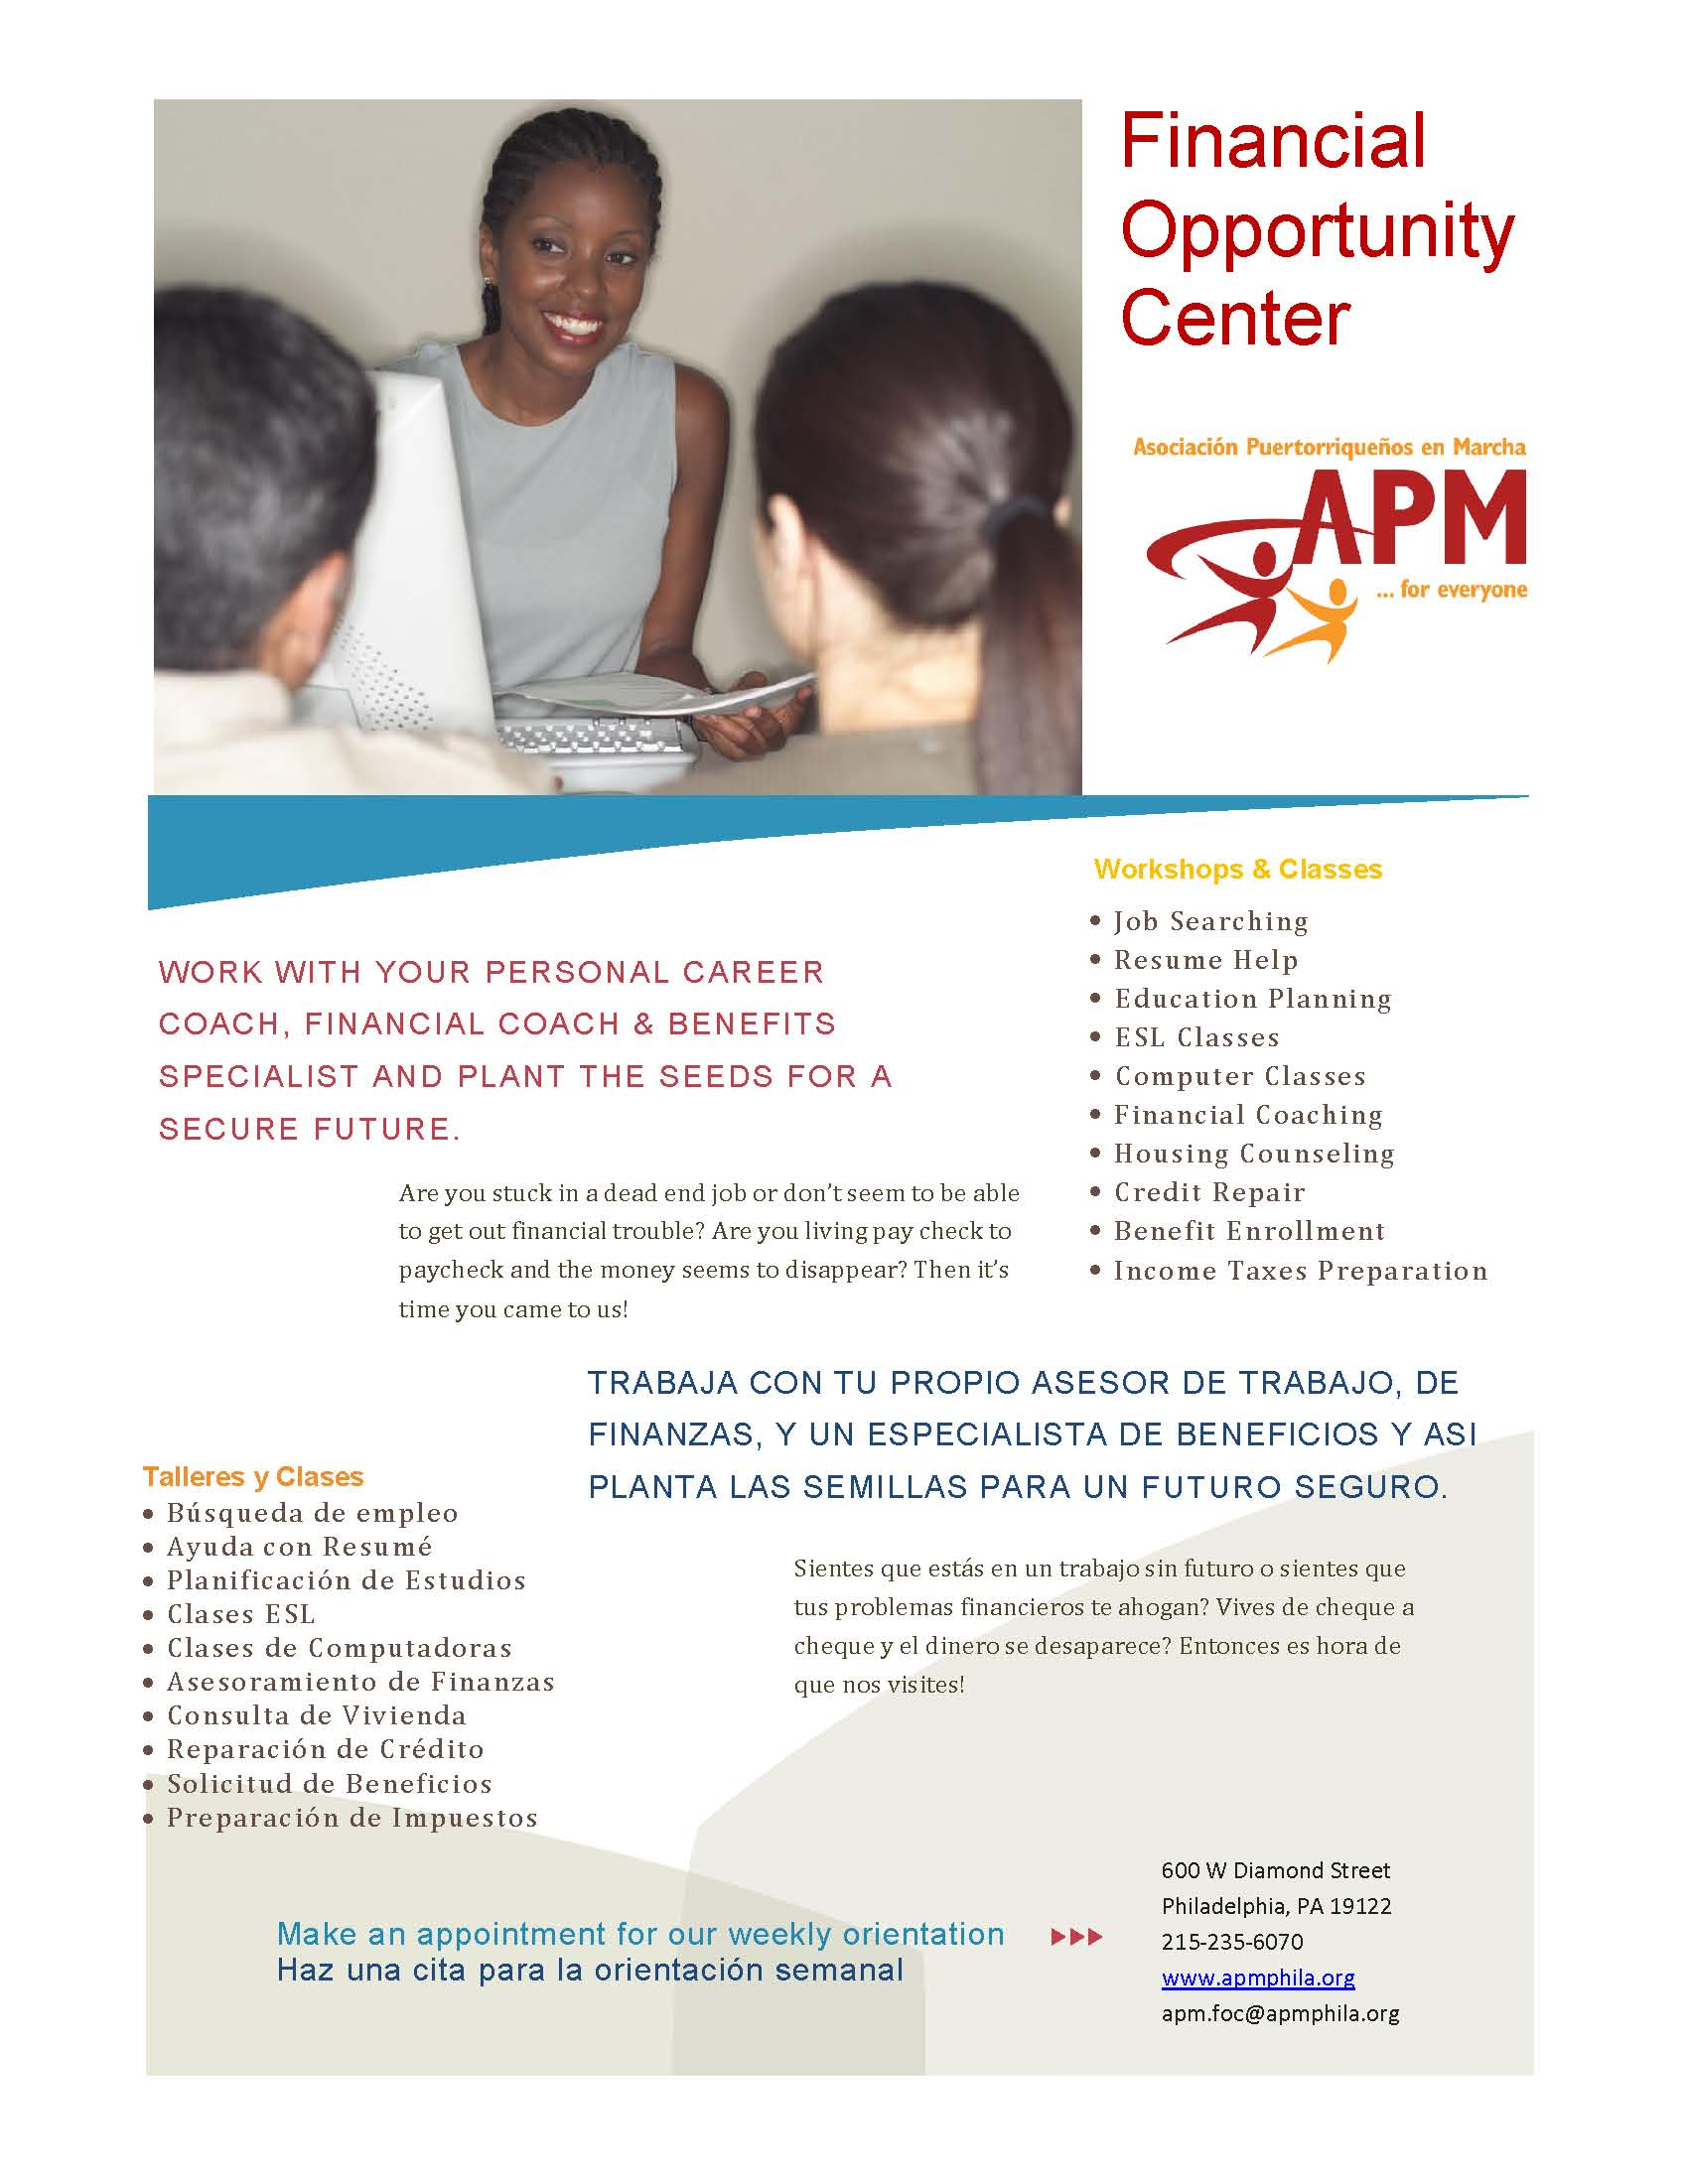 APM's Financial Opportunity Center Flyer